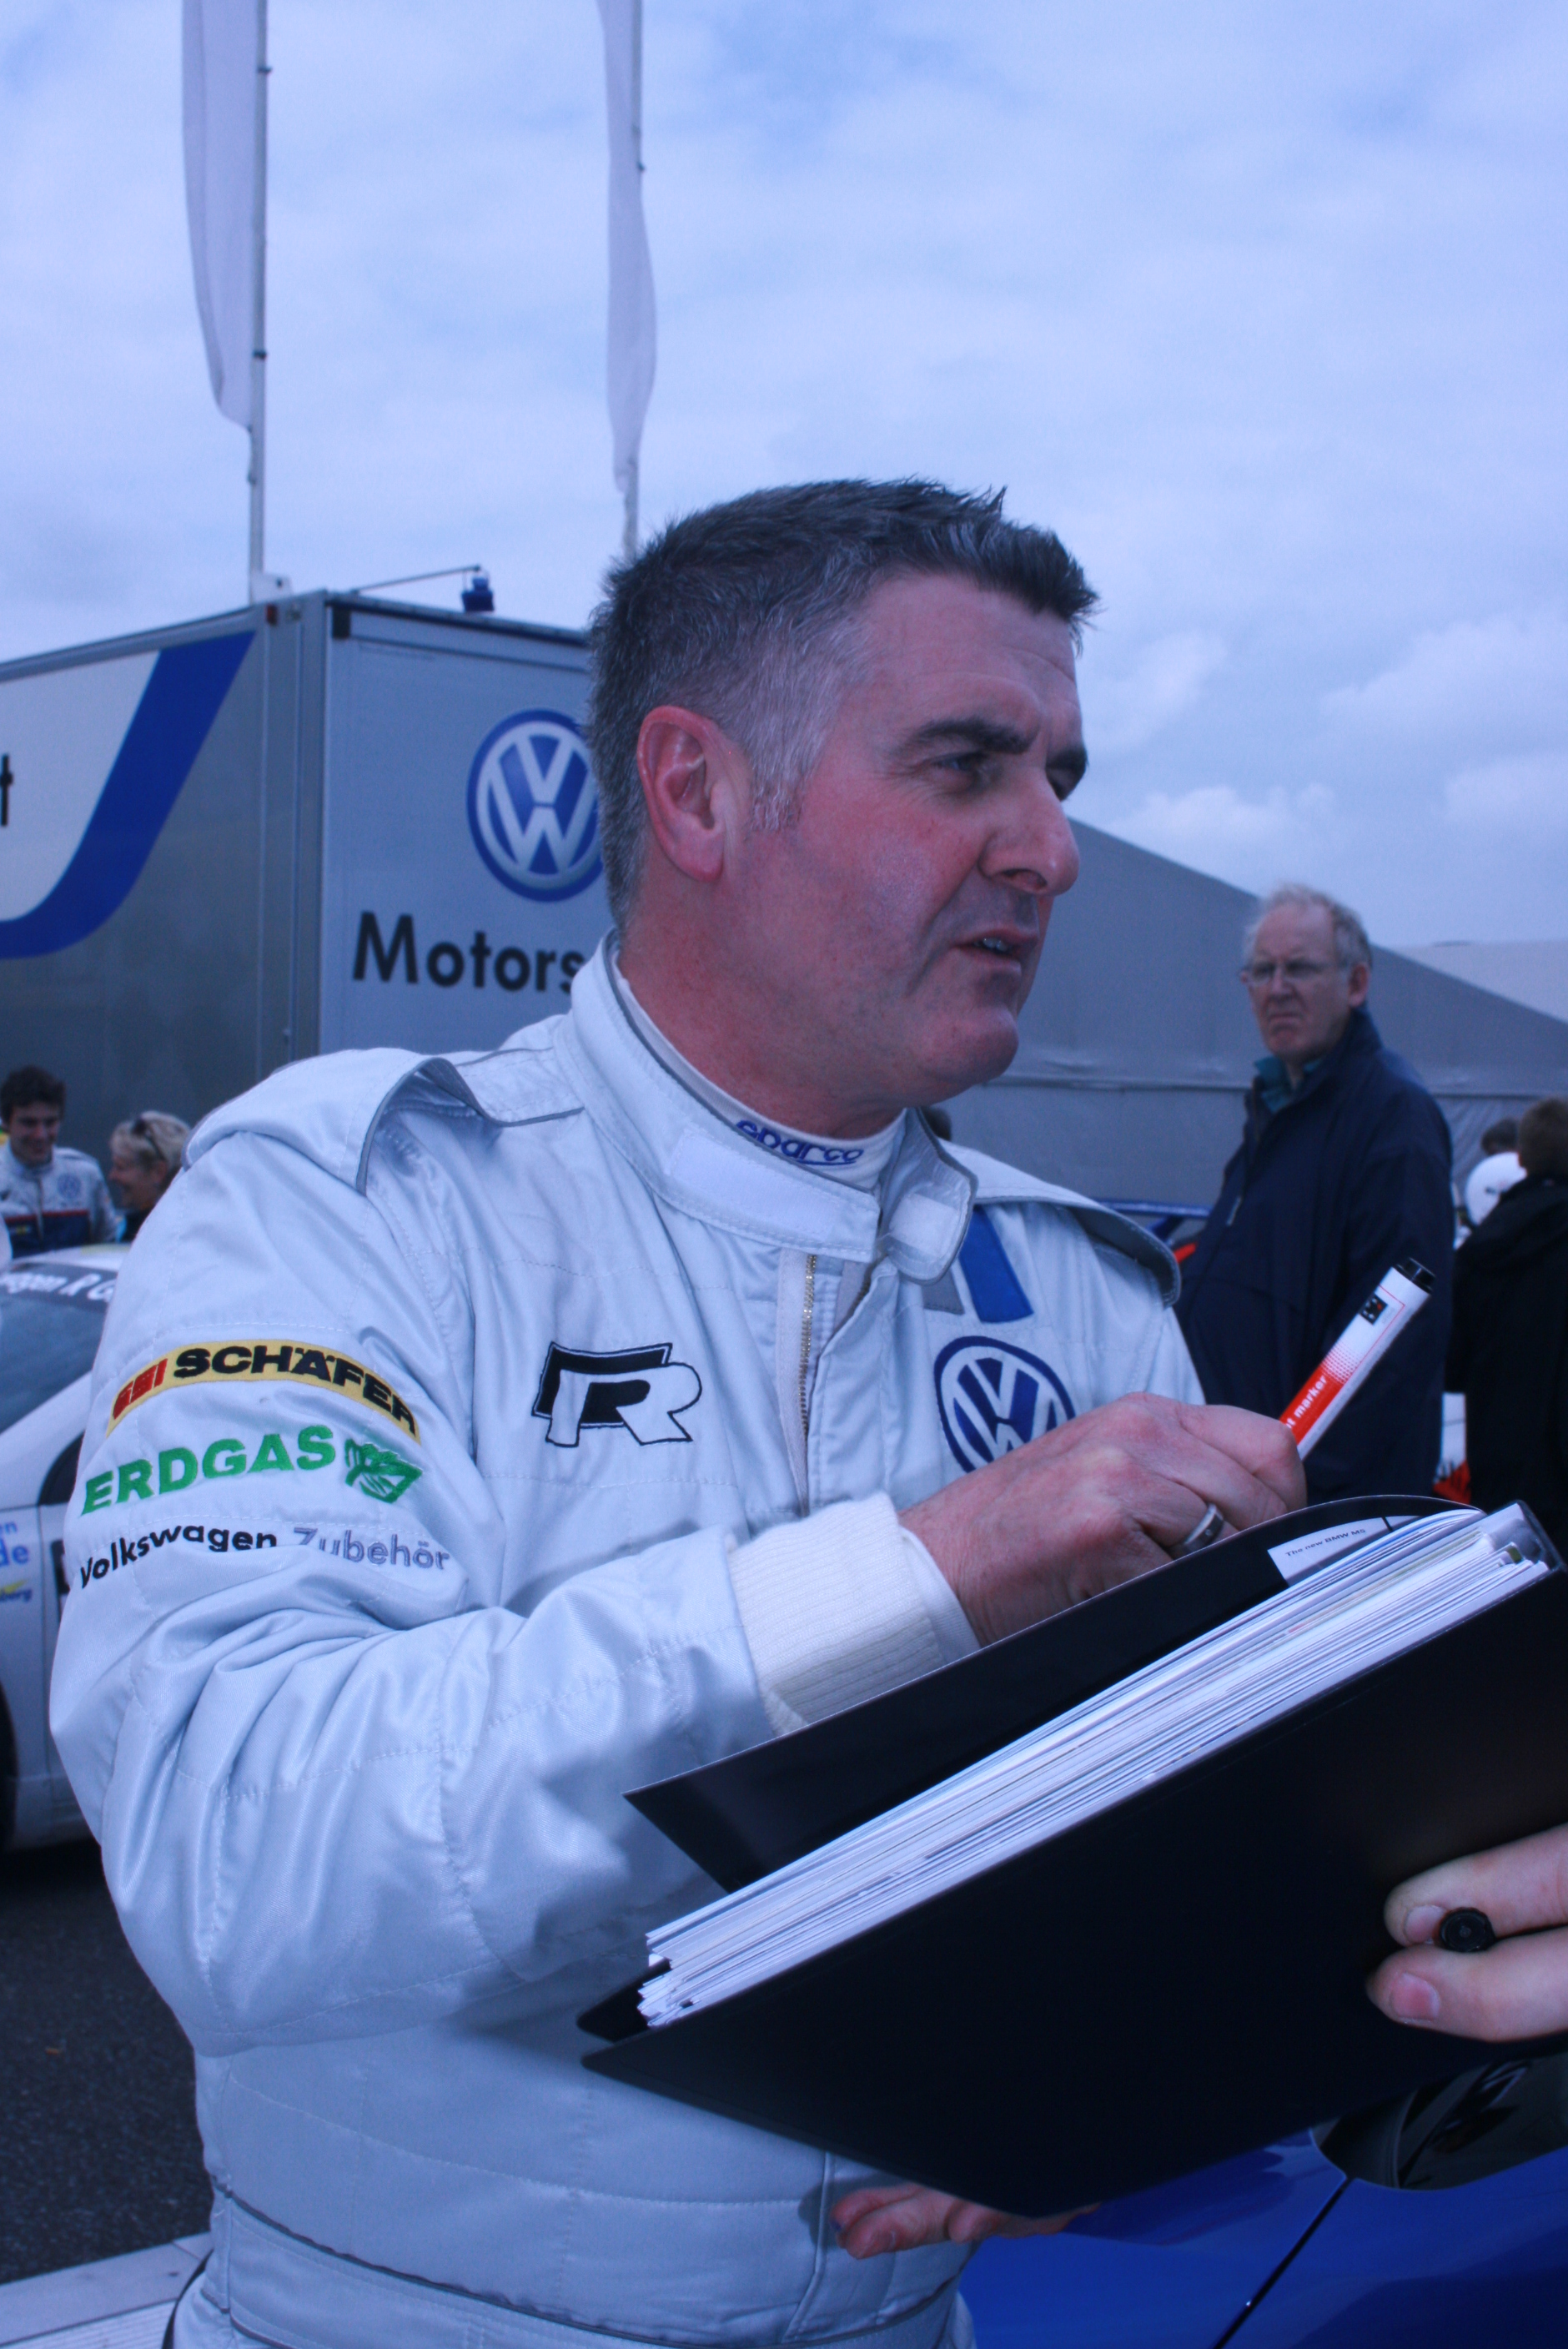 The 53-year old son of father (?) and mother(?), 173 cm tall Martin Donnelly in 2018 photo